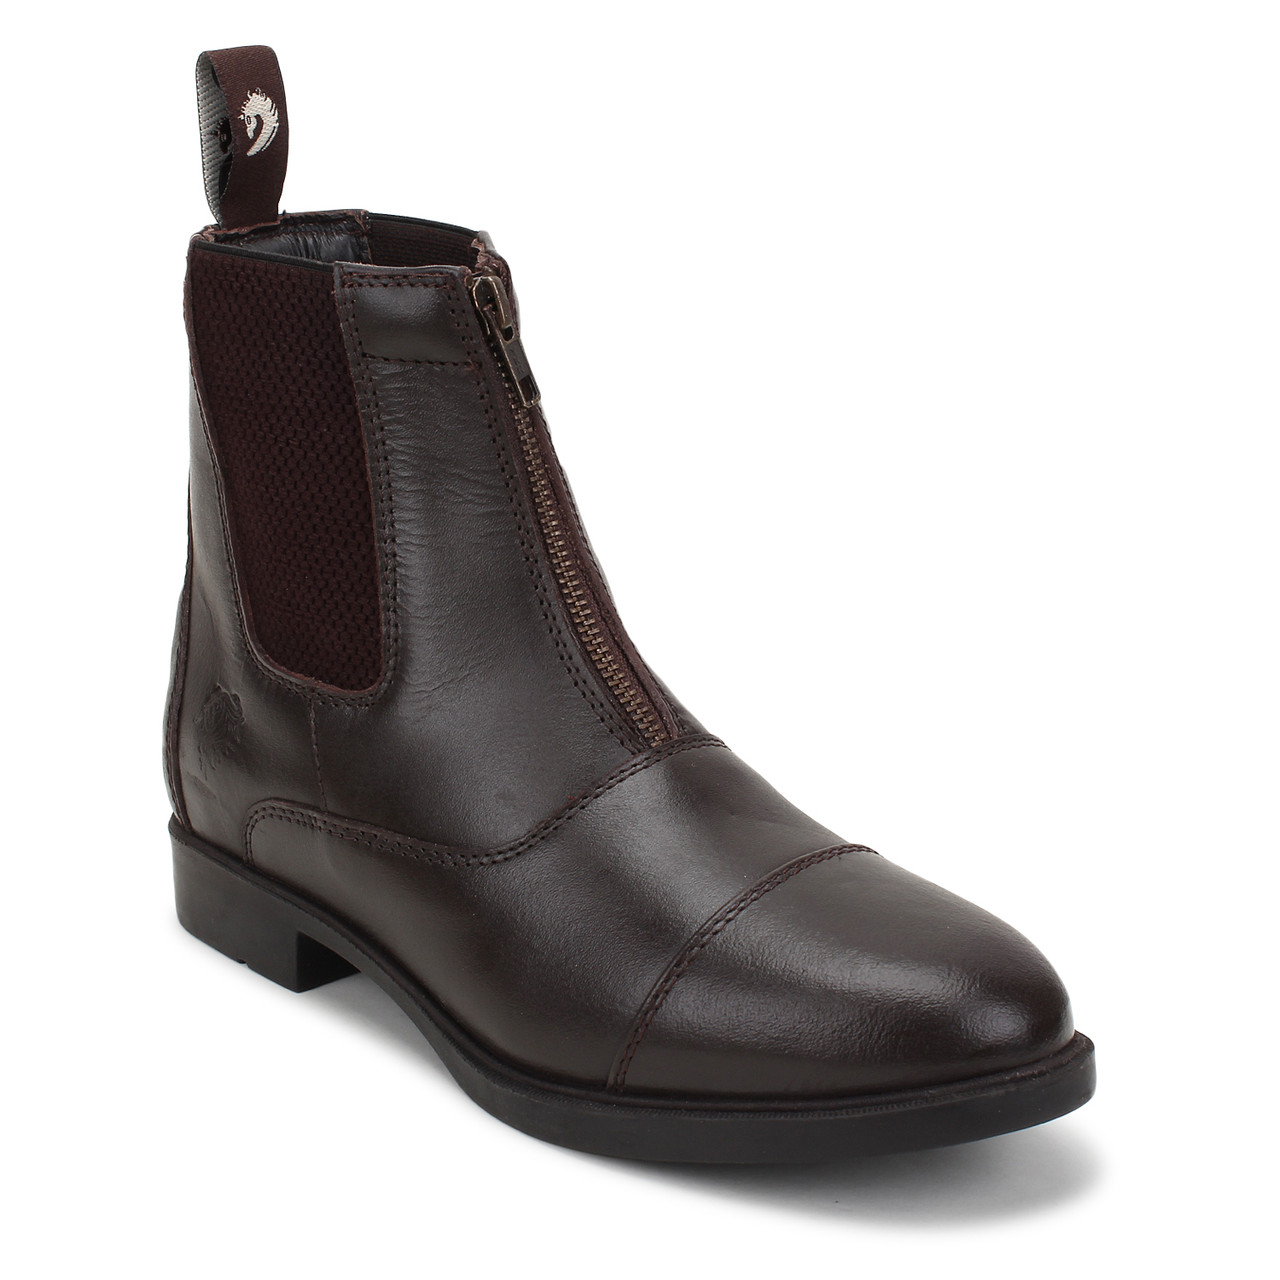 Front Zip Dark Brown Riding Jodhpurs Boots